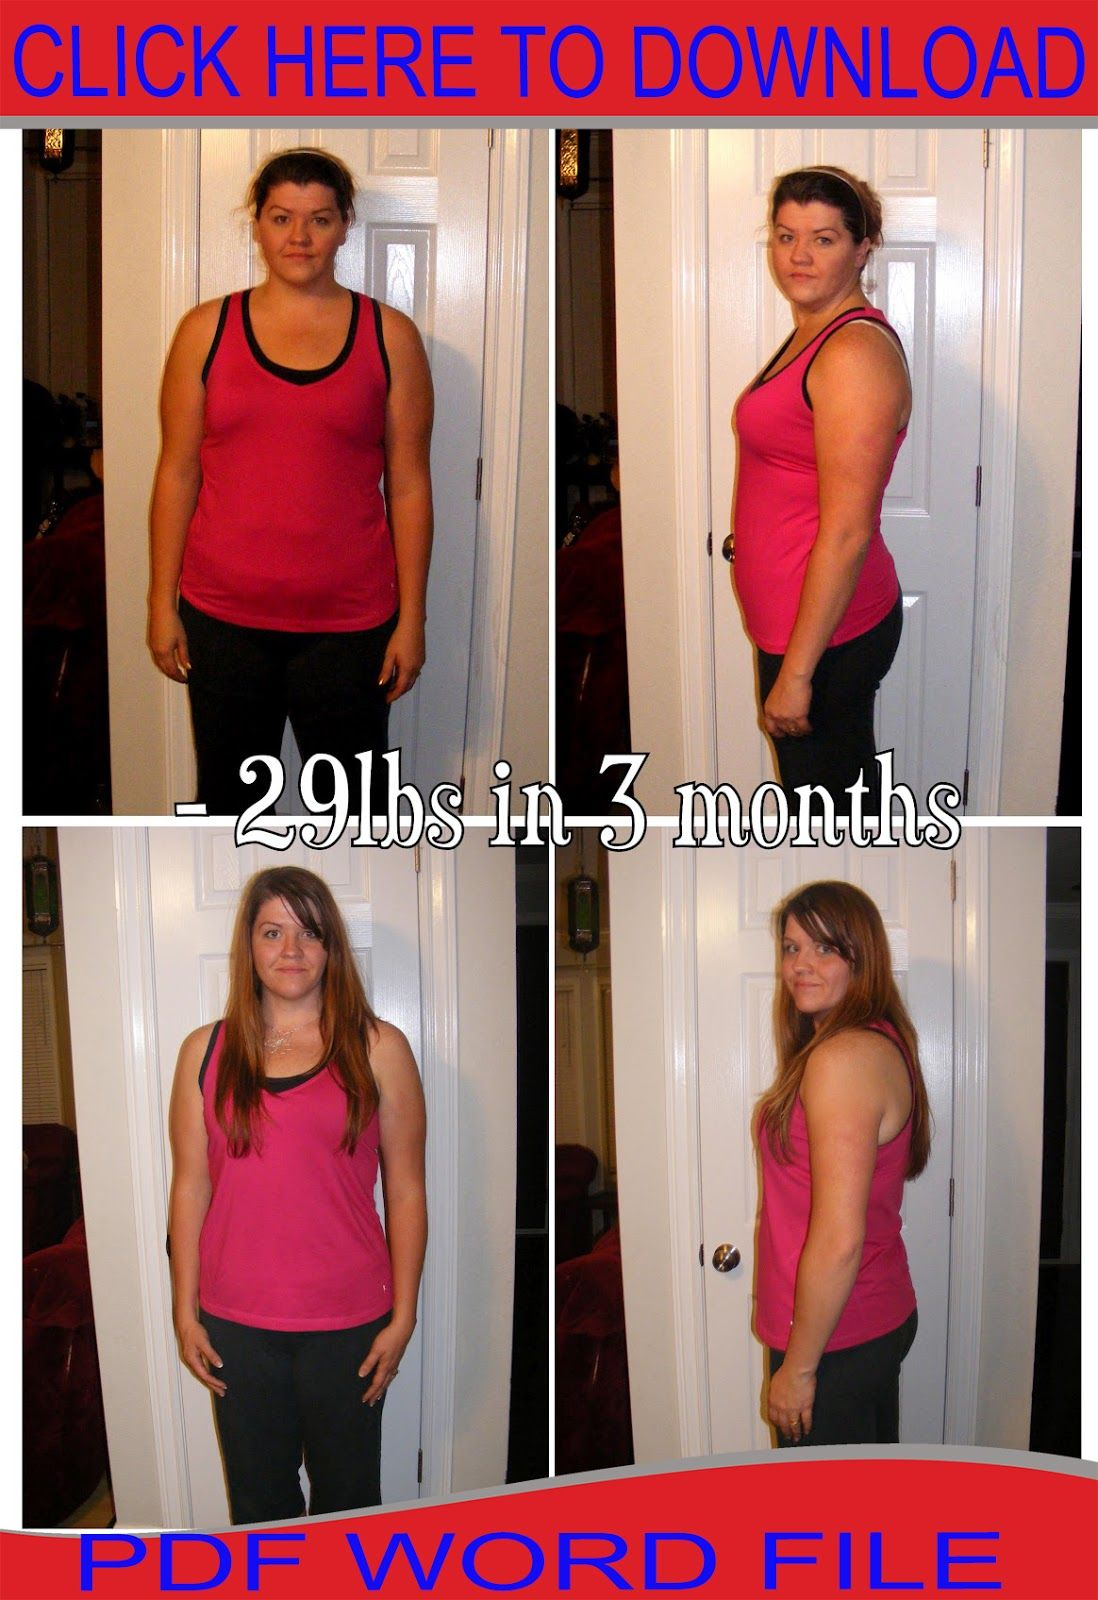 Metabolic weight loss rockledge fl image 9